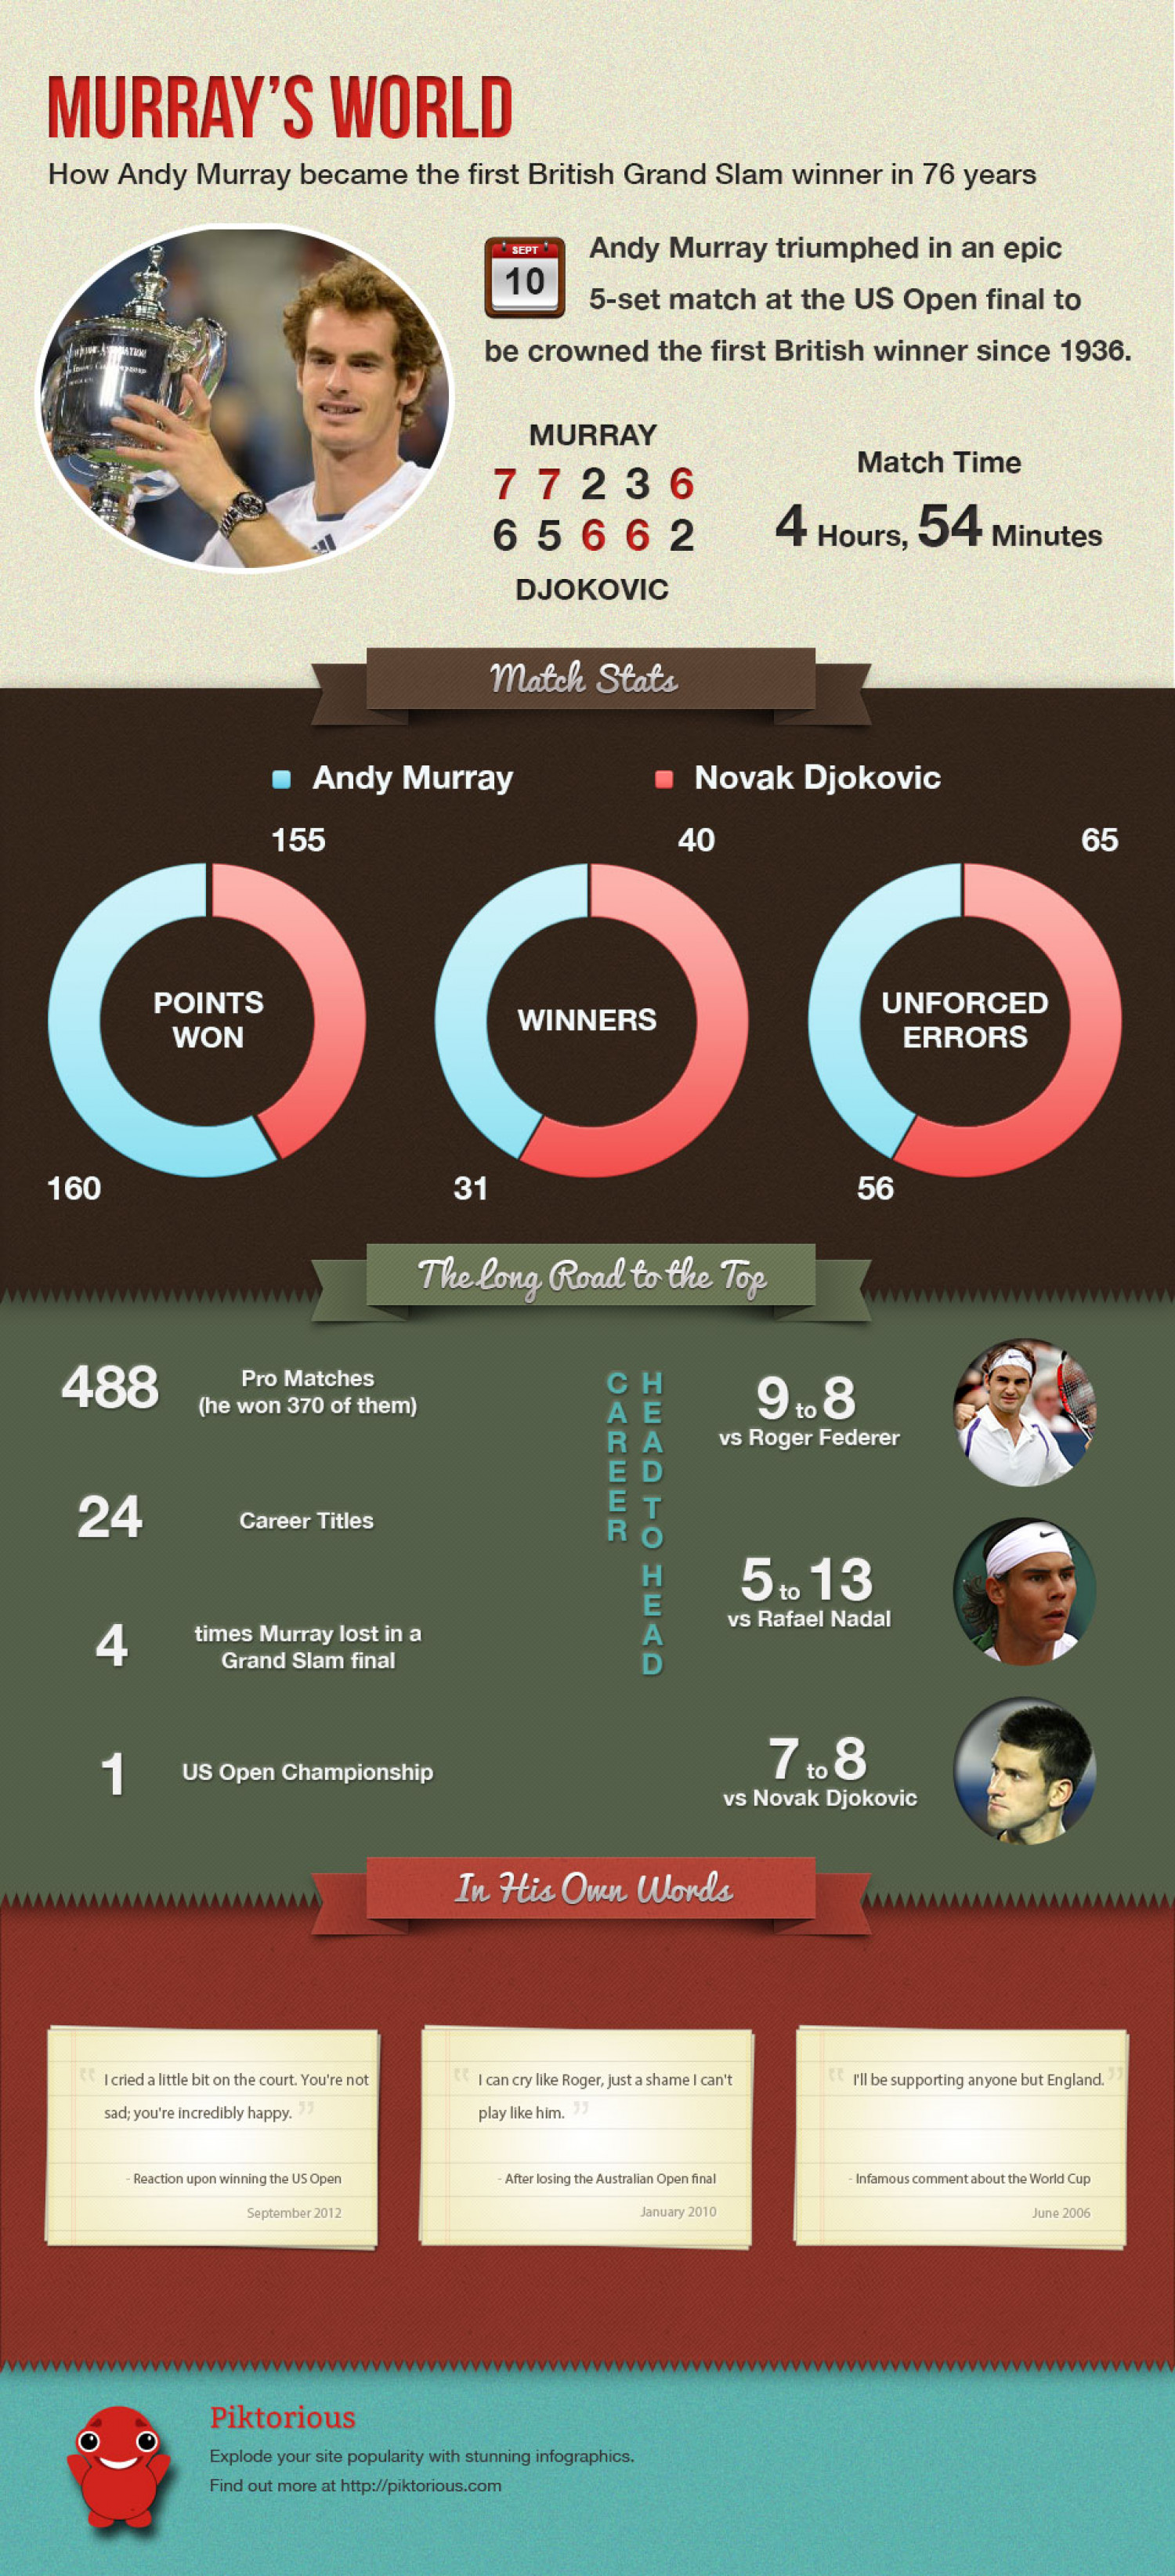 Murray's World - How Andy Murray conquered the tennis world Infographic